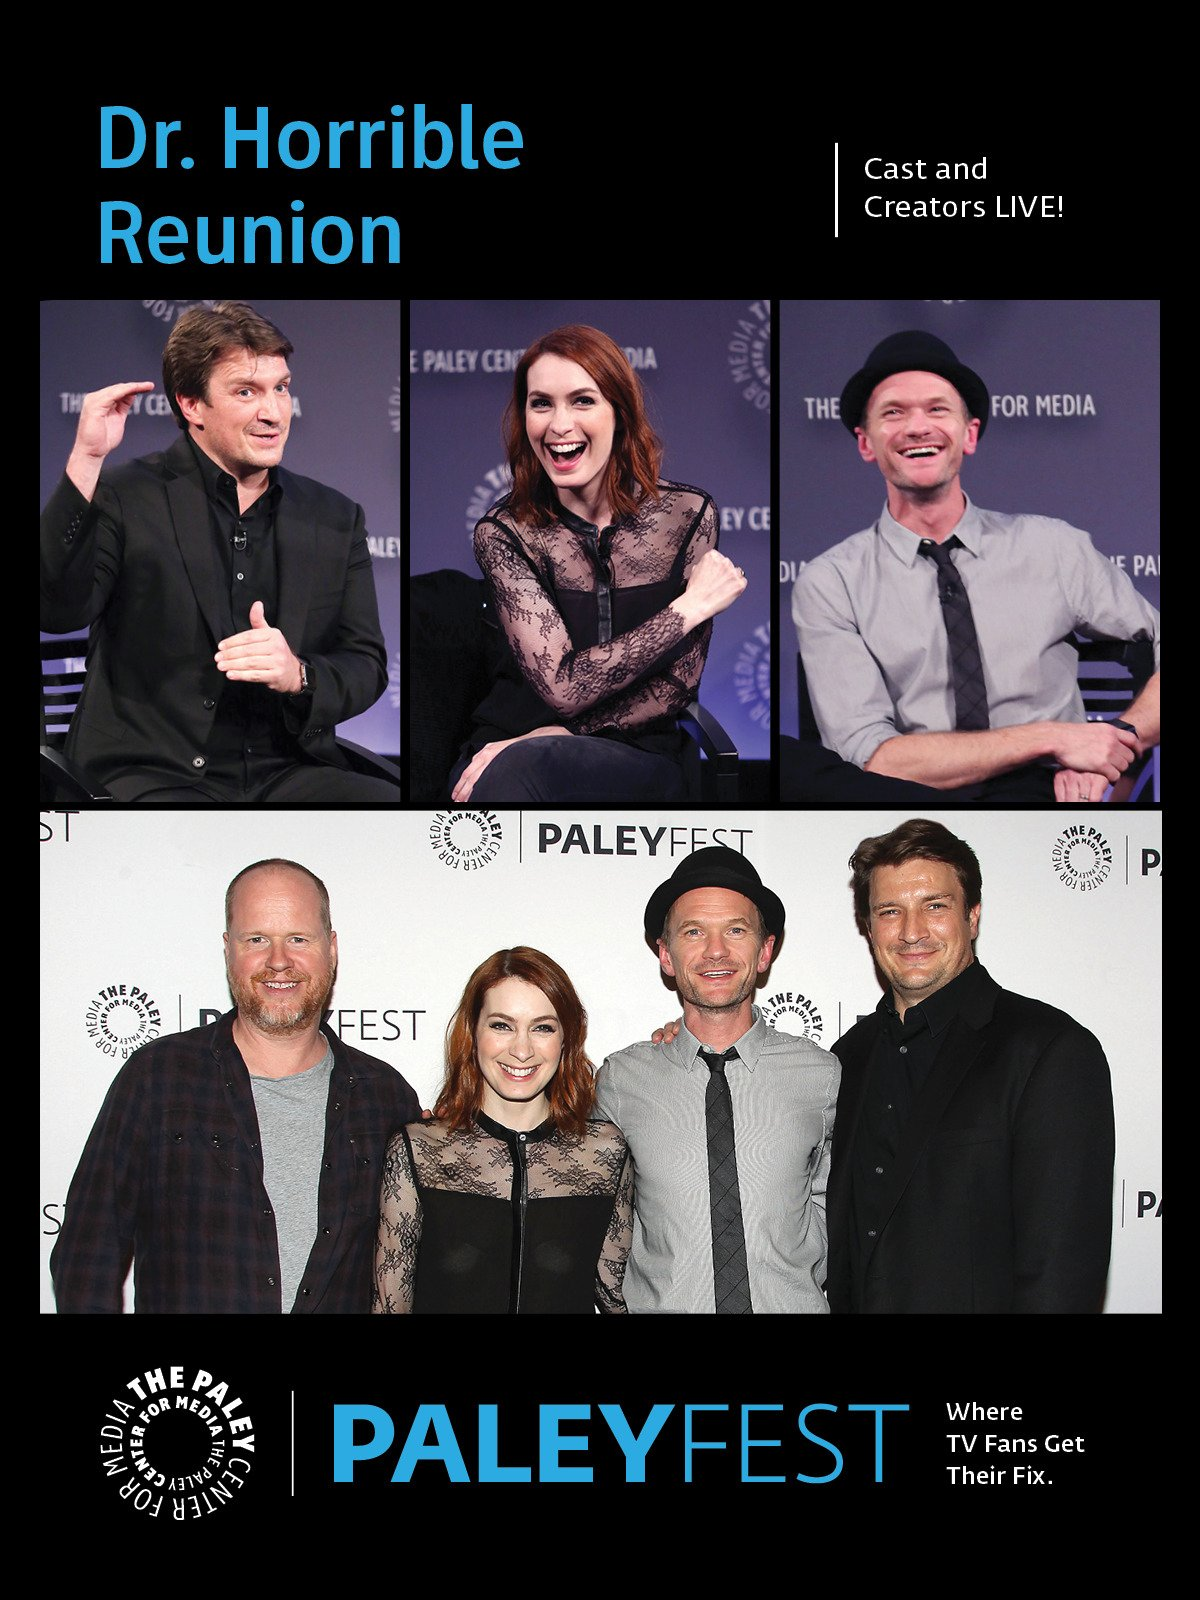 Dr. Horrible Reunion: Cast and Creators PaleyFest